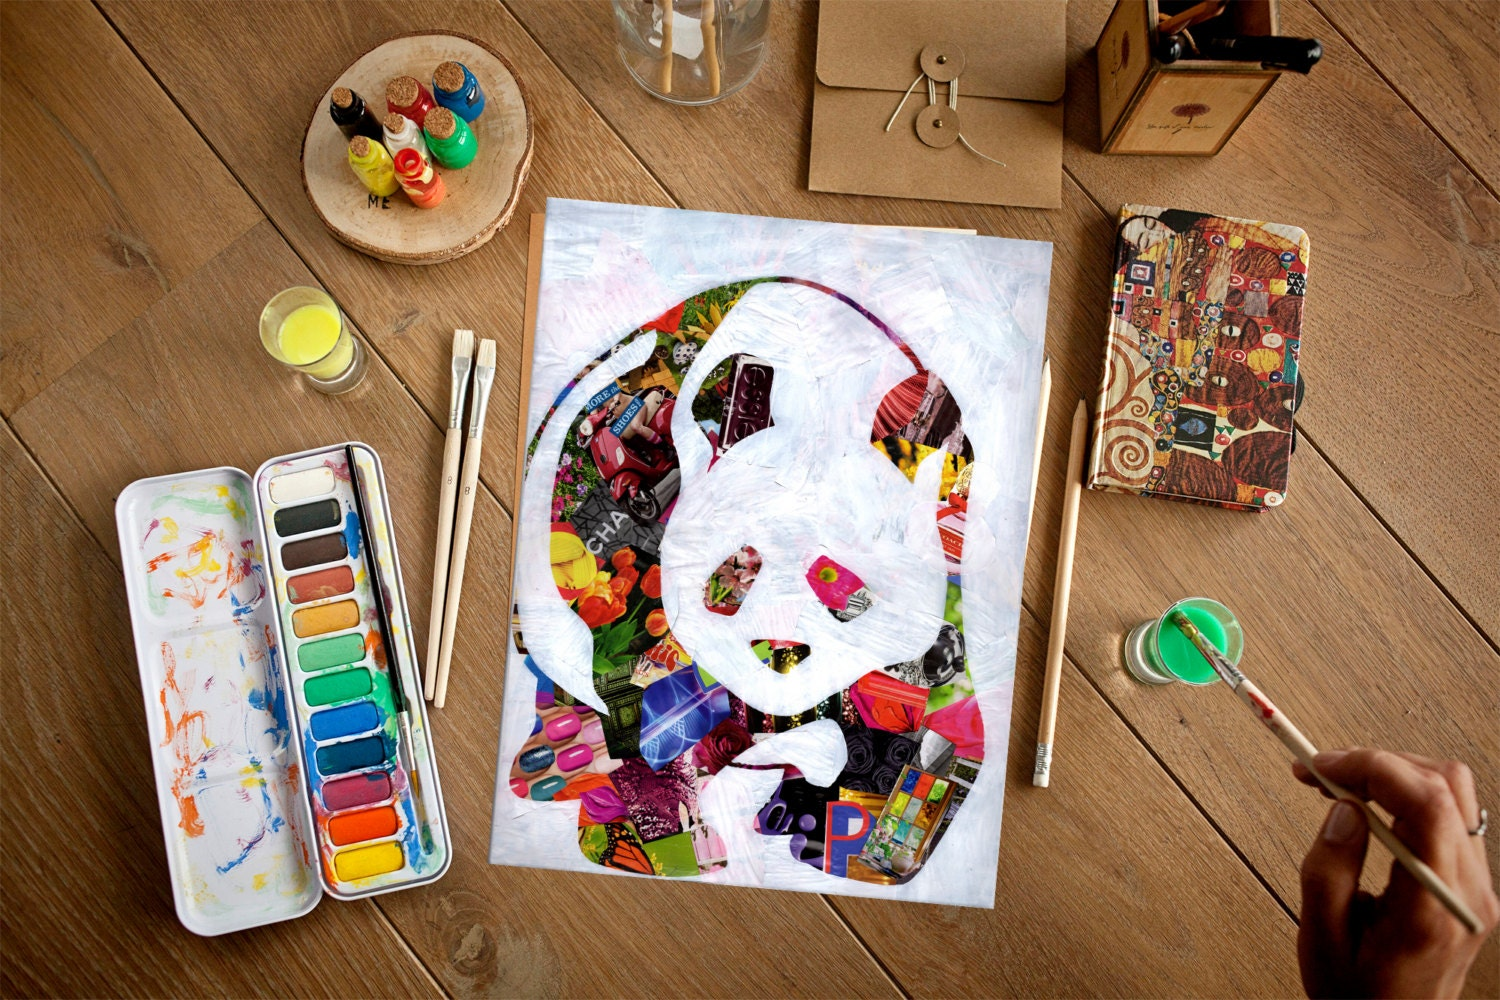 Mixed media art ideas for kids images for Cool art ideas for kids